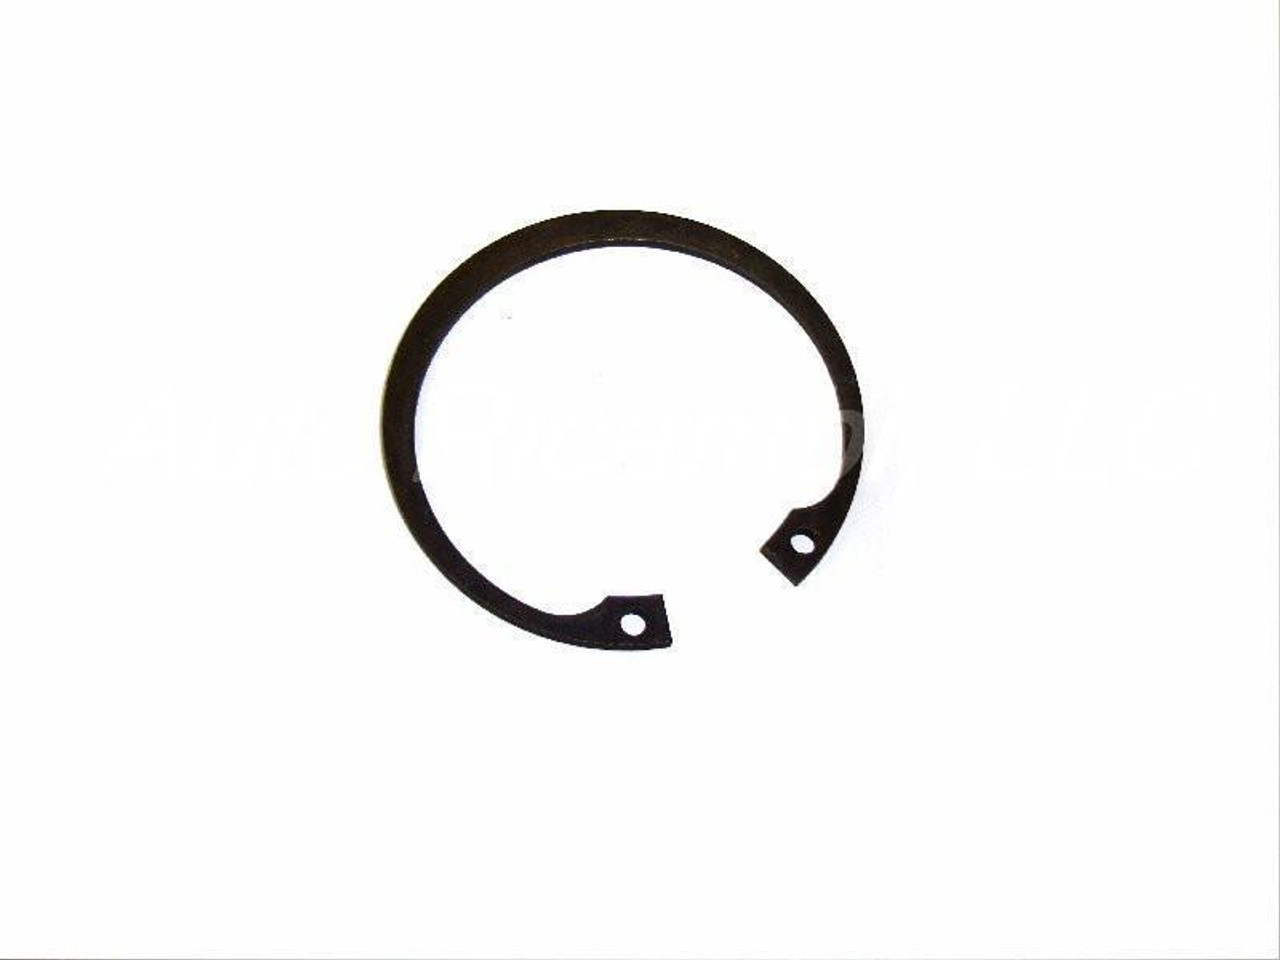 Rear Axle Shaft Bearing Retainer C-Clip